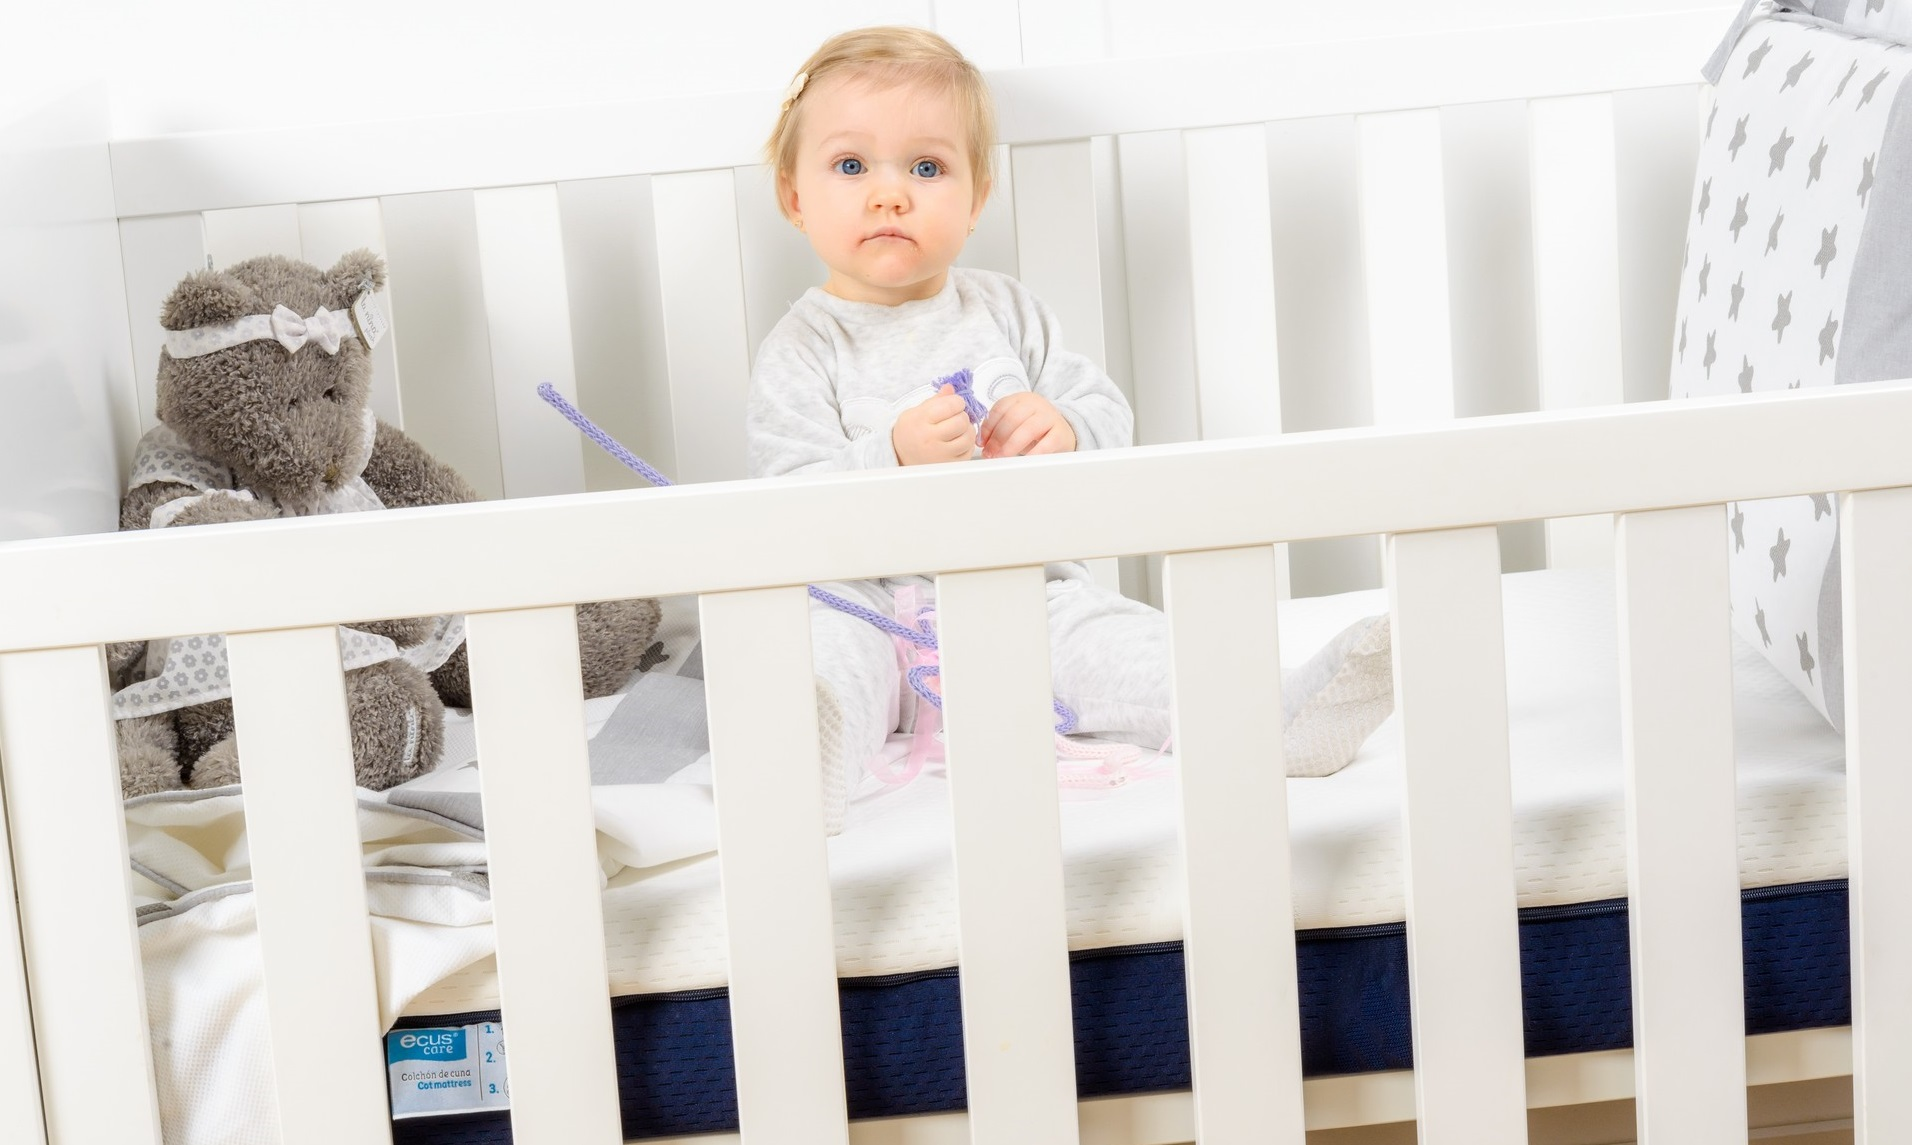 Ecus Kids - The anti-suffocation crib mattress that prevents plagiocephaly